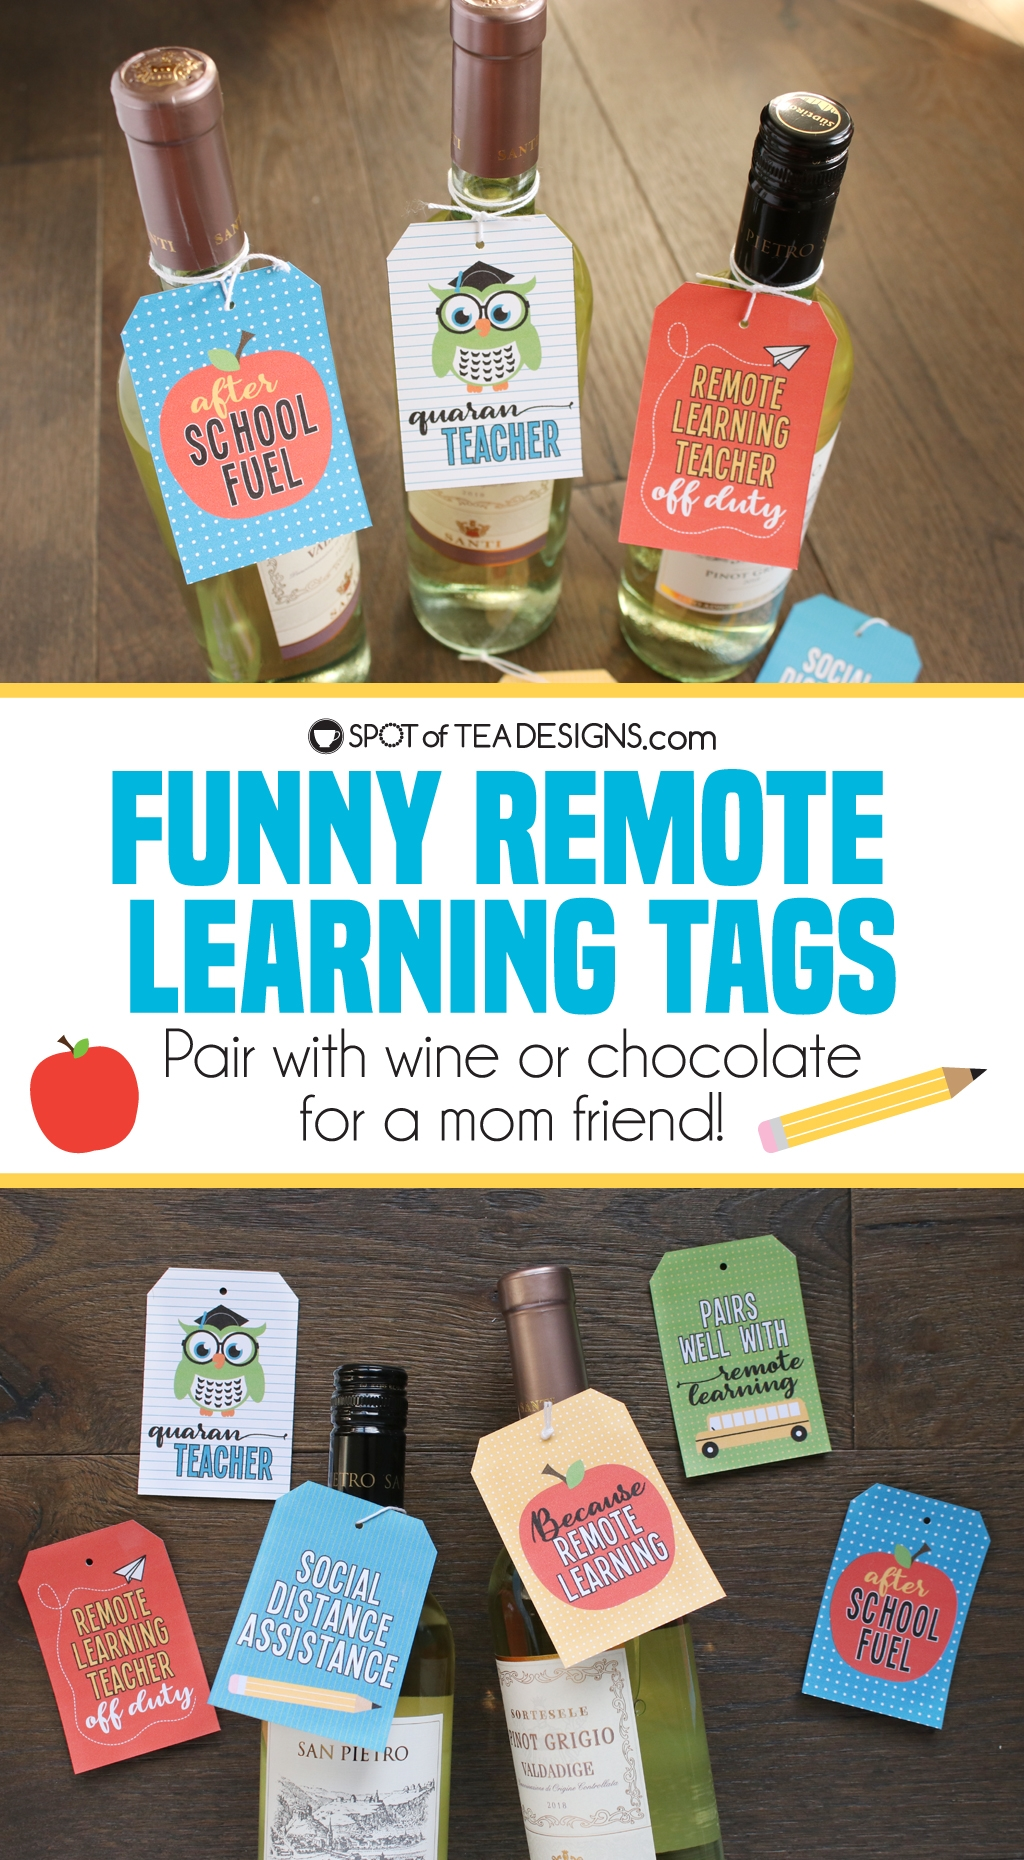 Funny remote learning tags - pair with wine or chocolate to cheer up a mom friend | spotofteadesigns.com